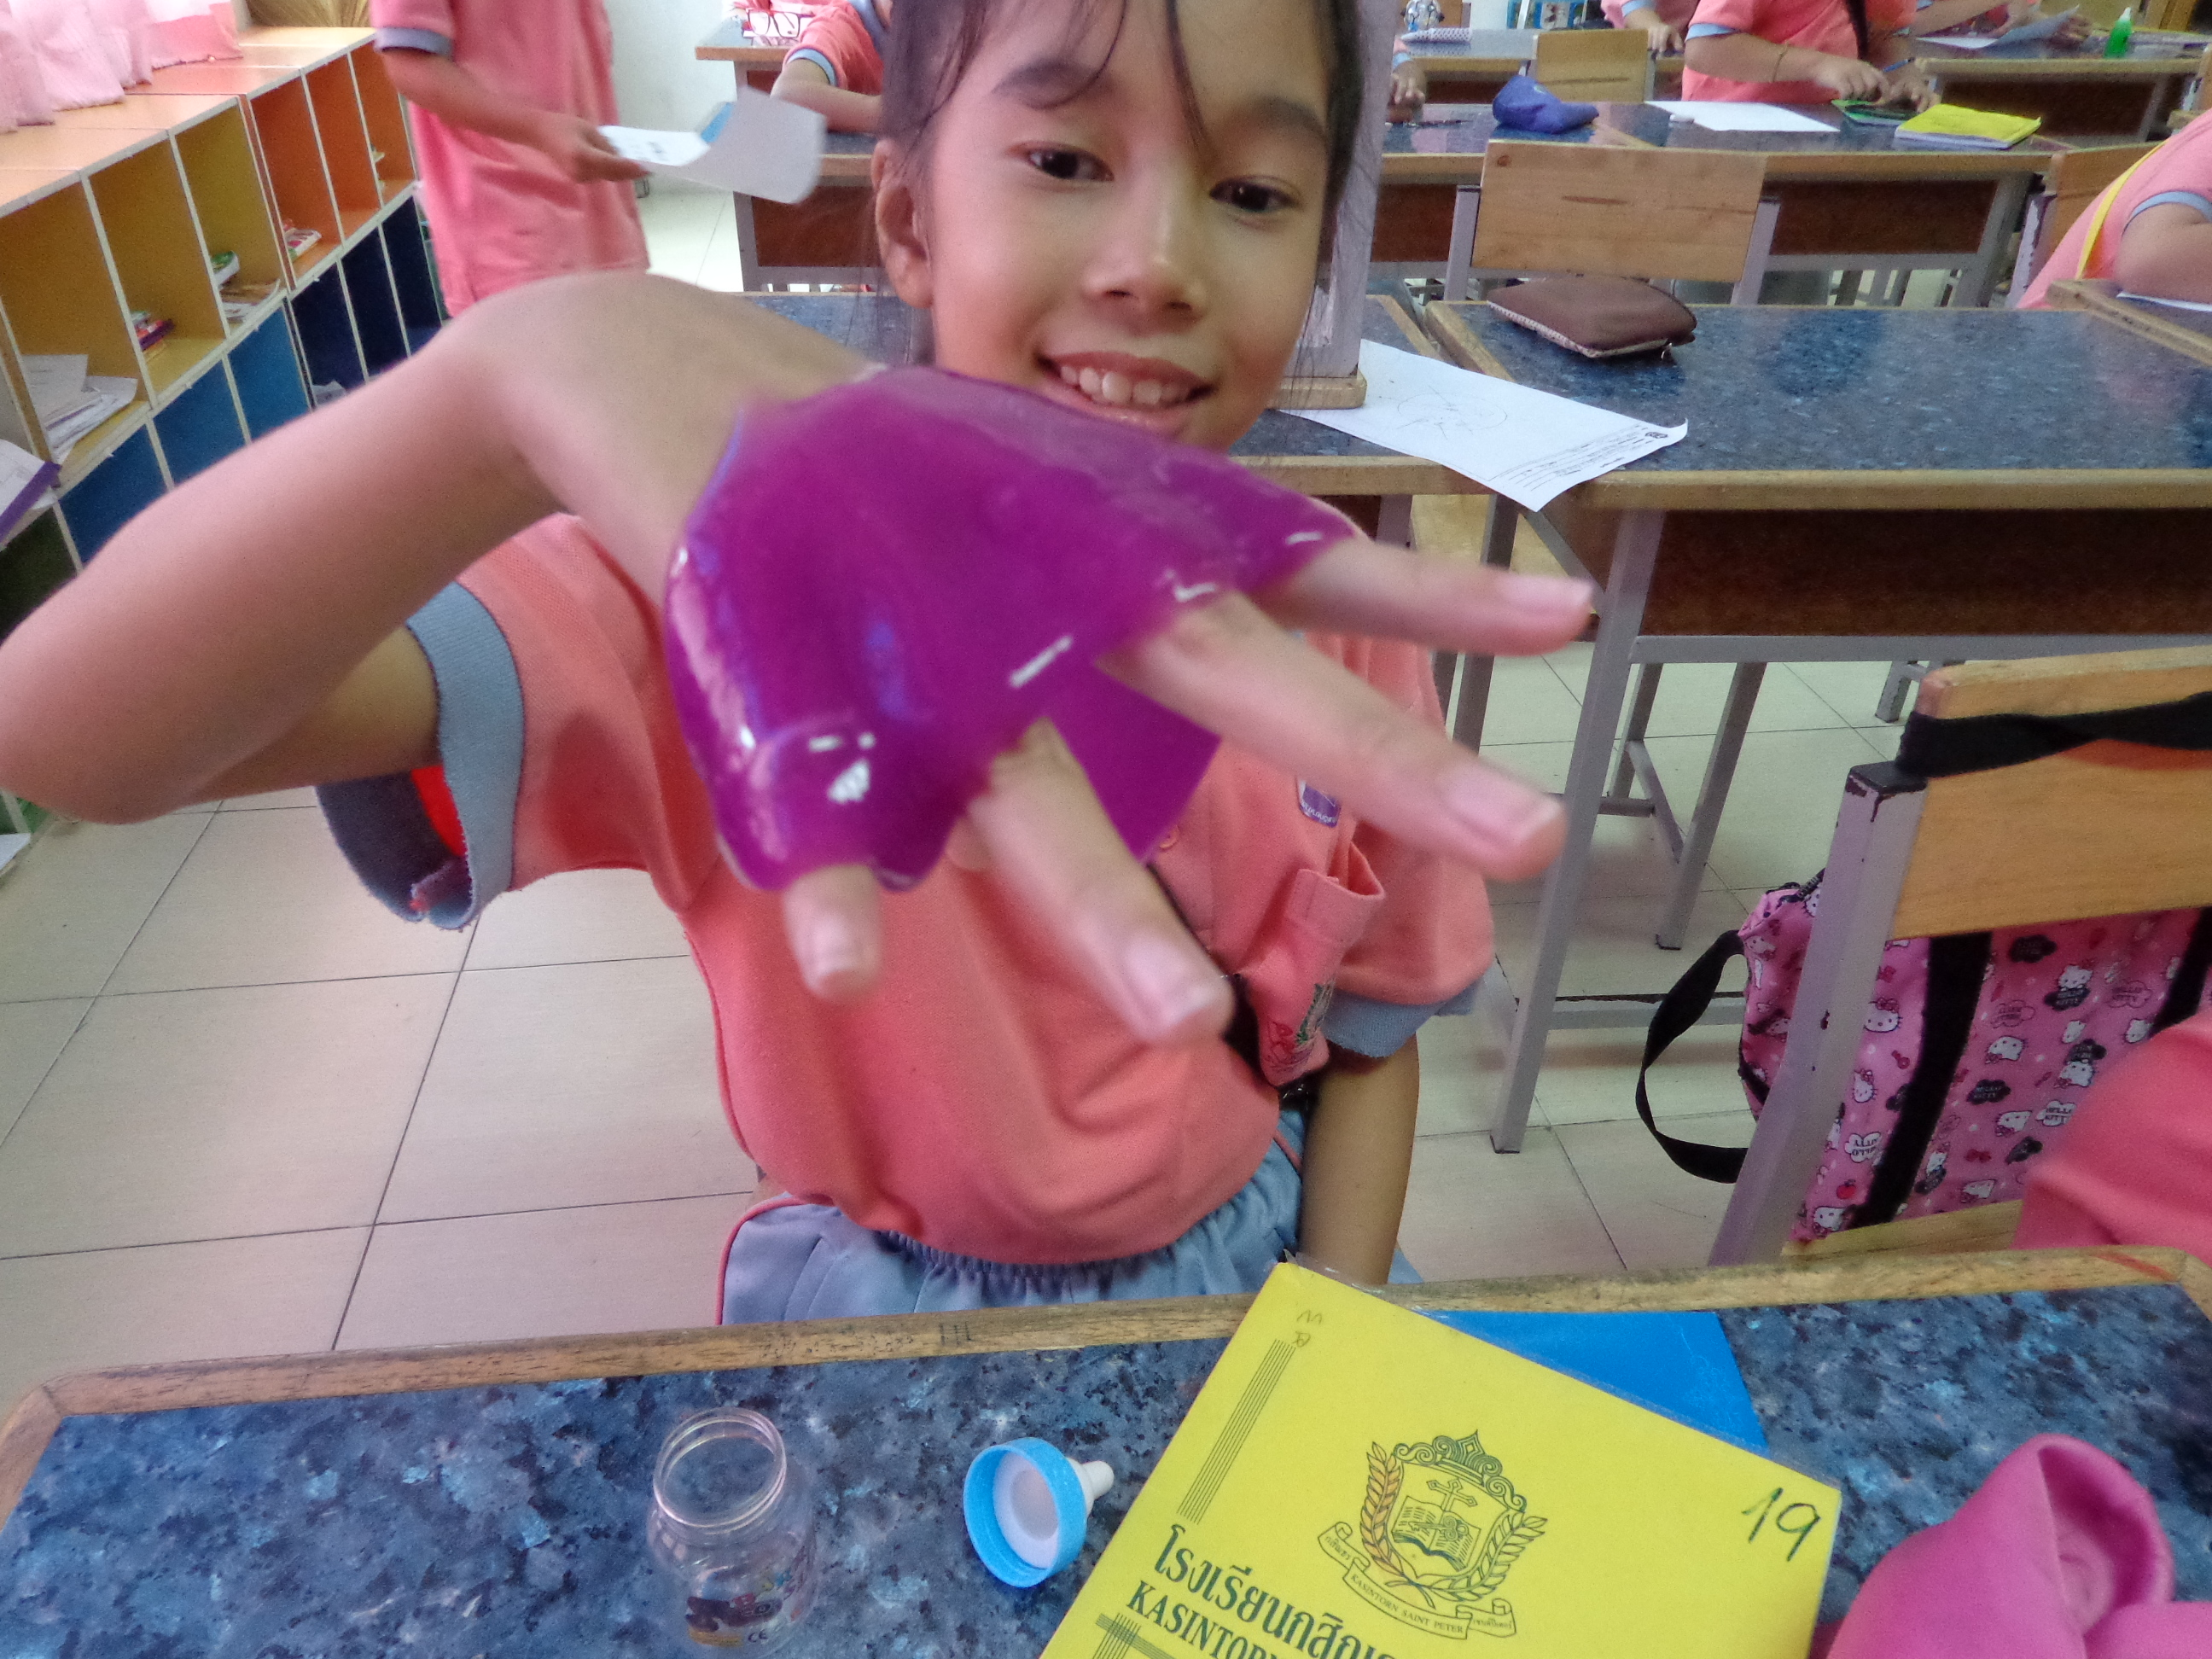 My student playing with purple slime toy